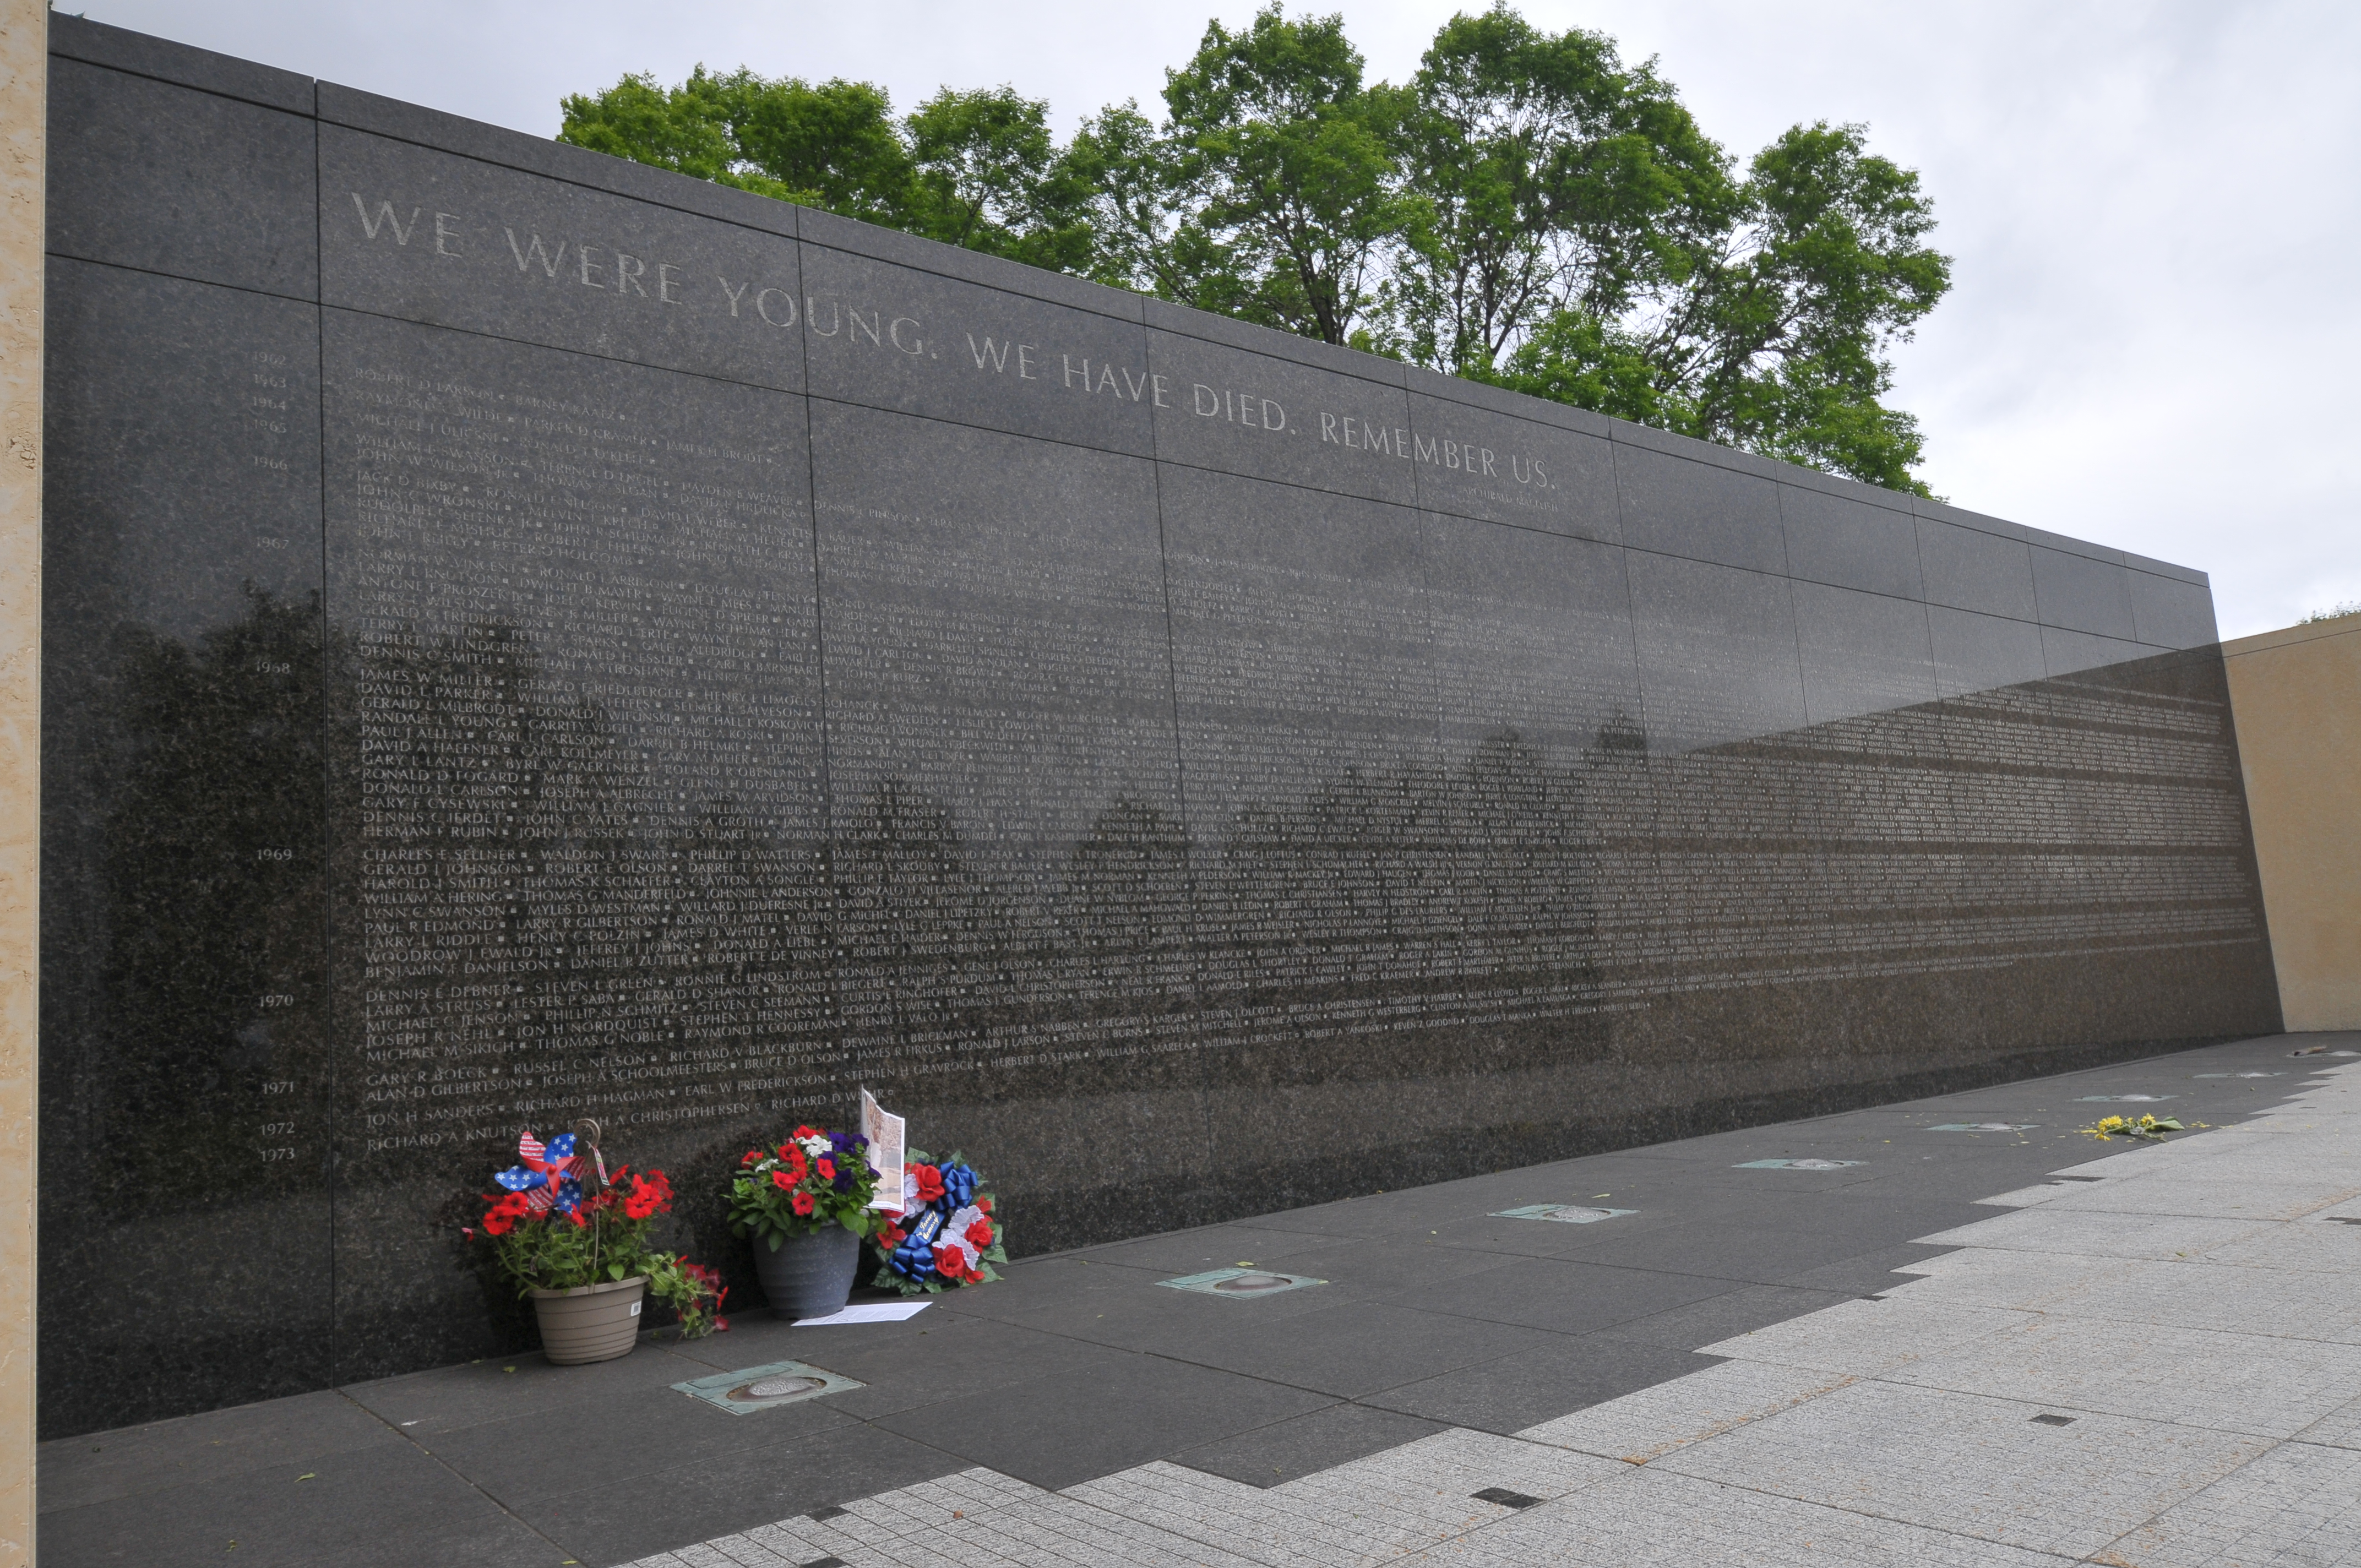 A Visit to The Wall